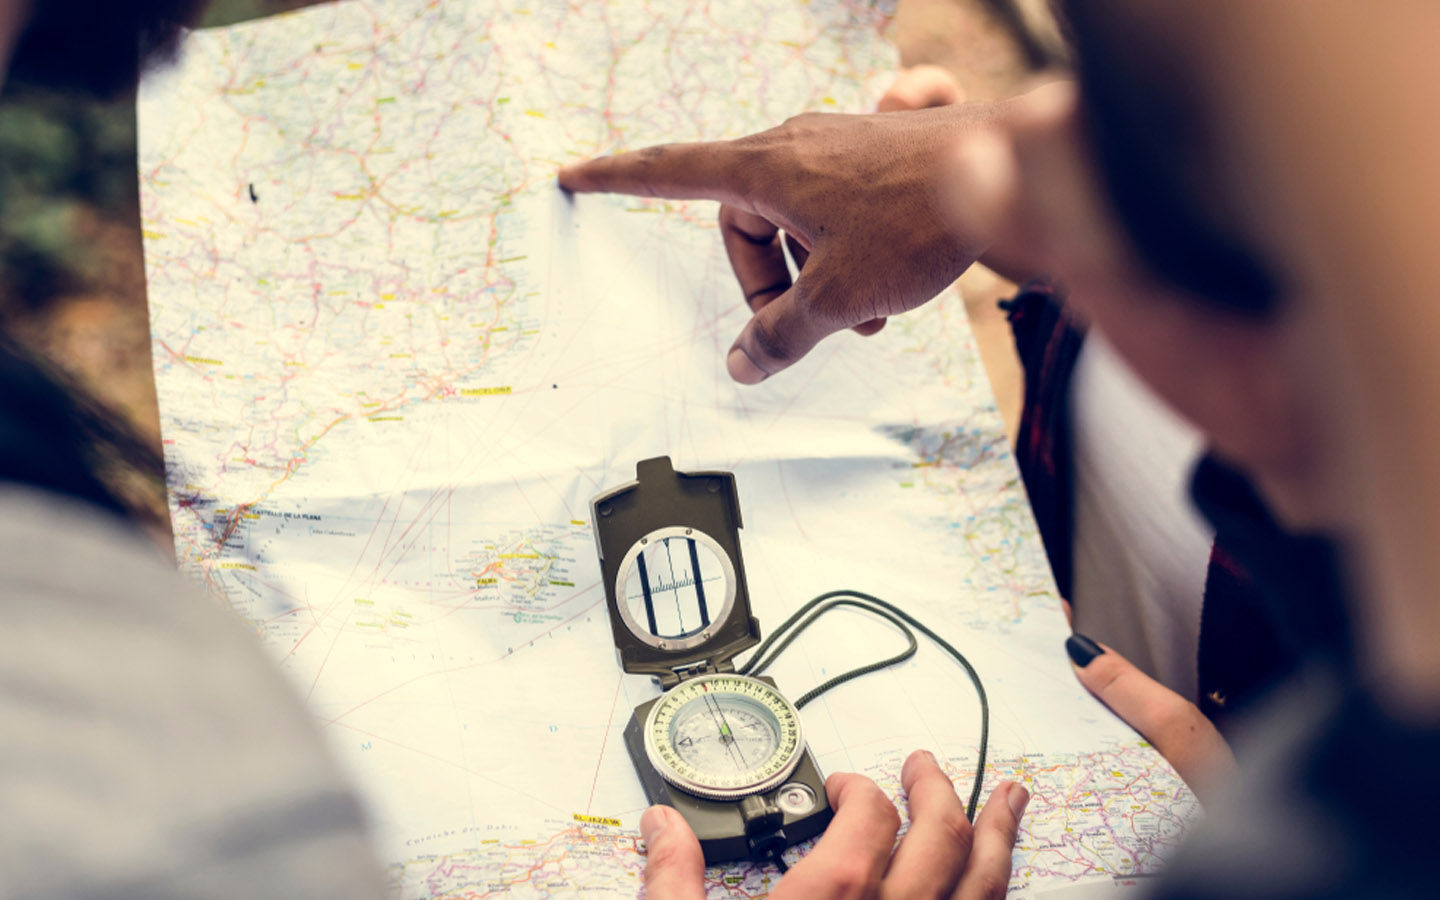 Keep a map for directions while desert camping in the UAE